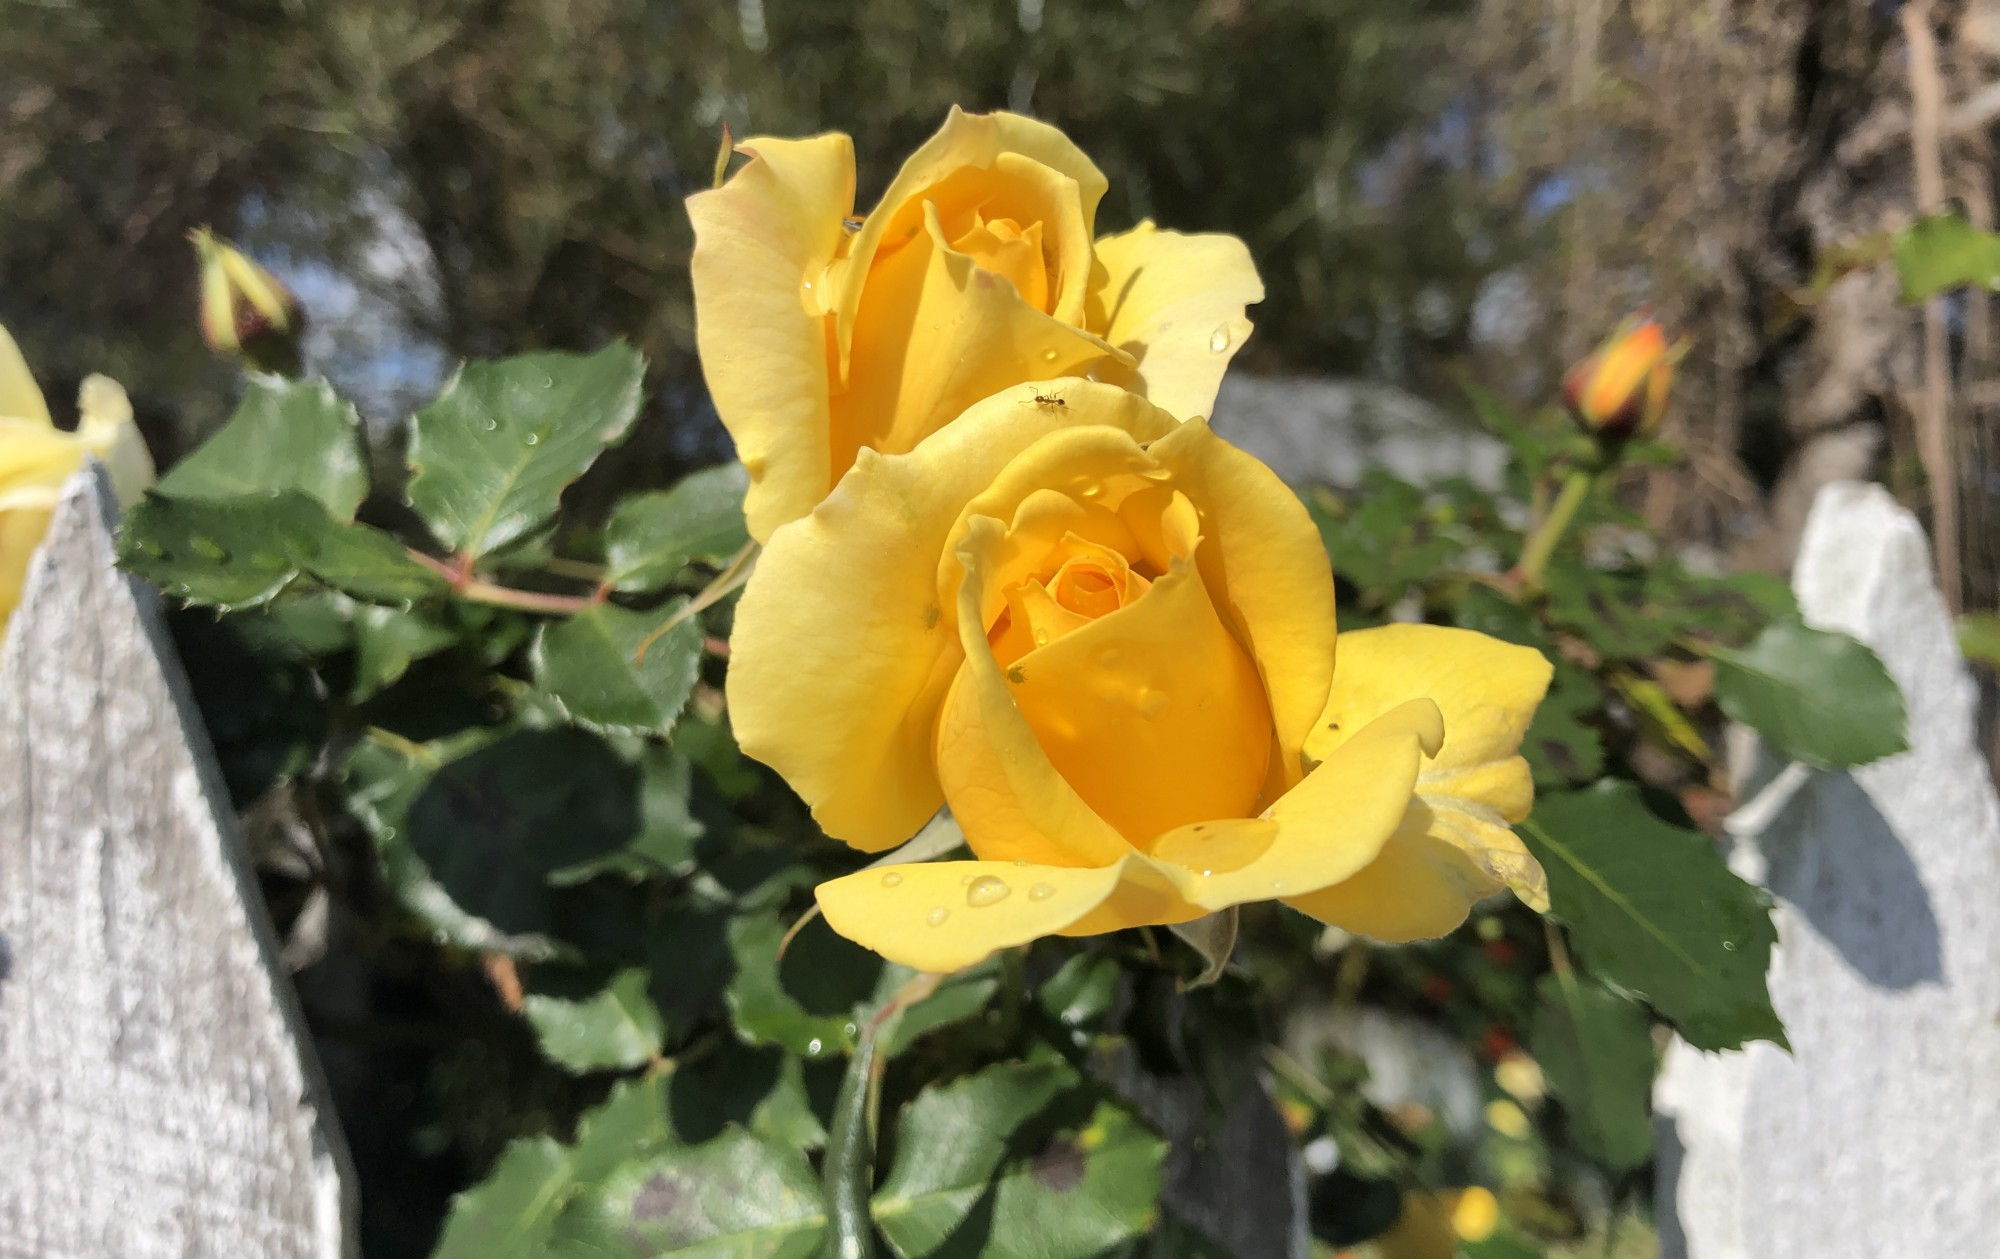 Two yellow roses framed by white pickets